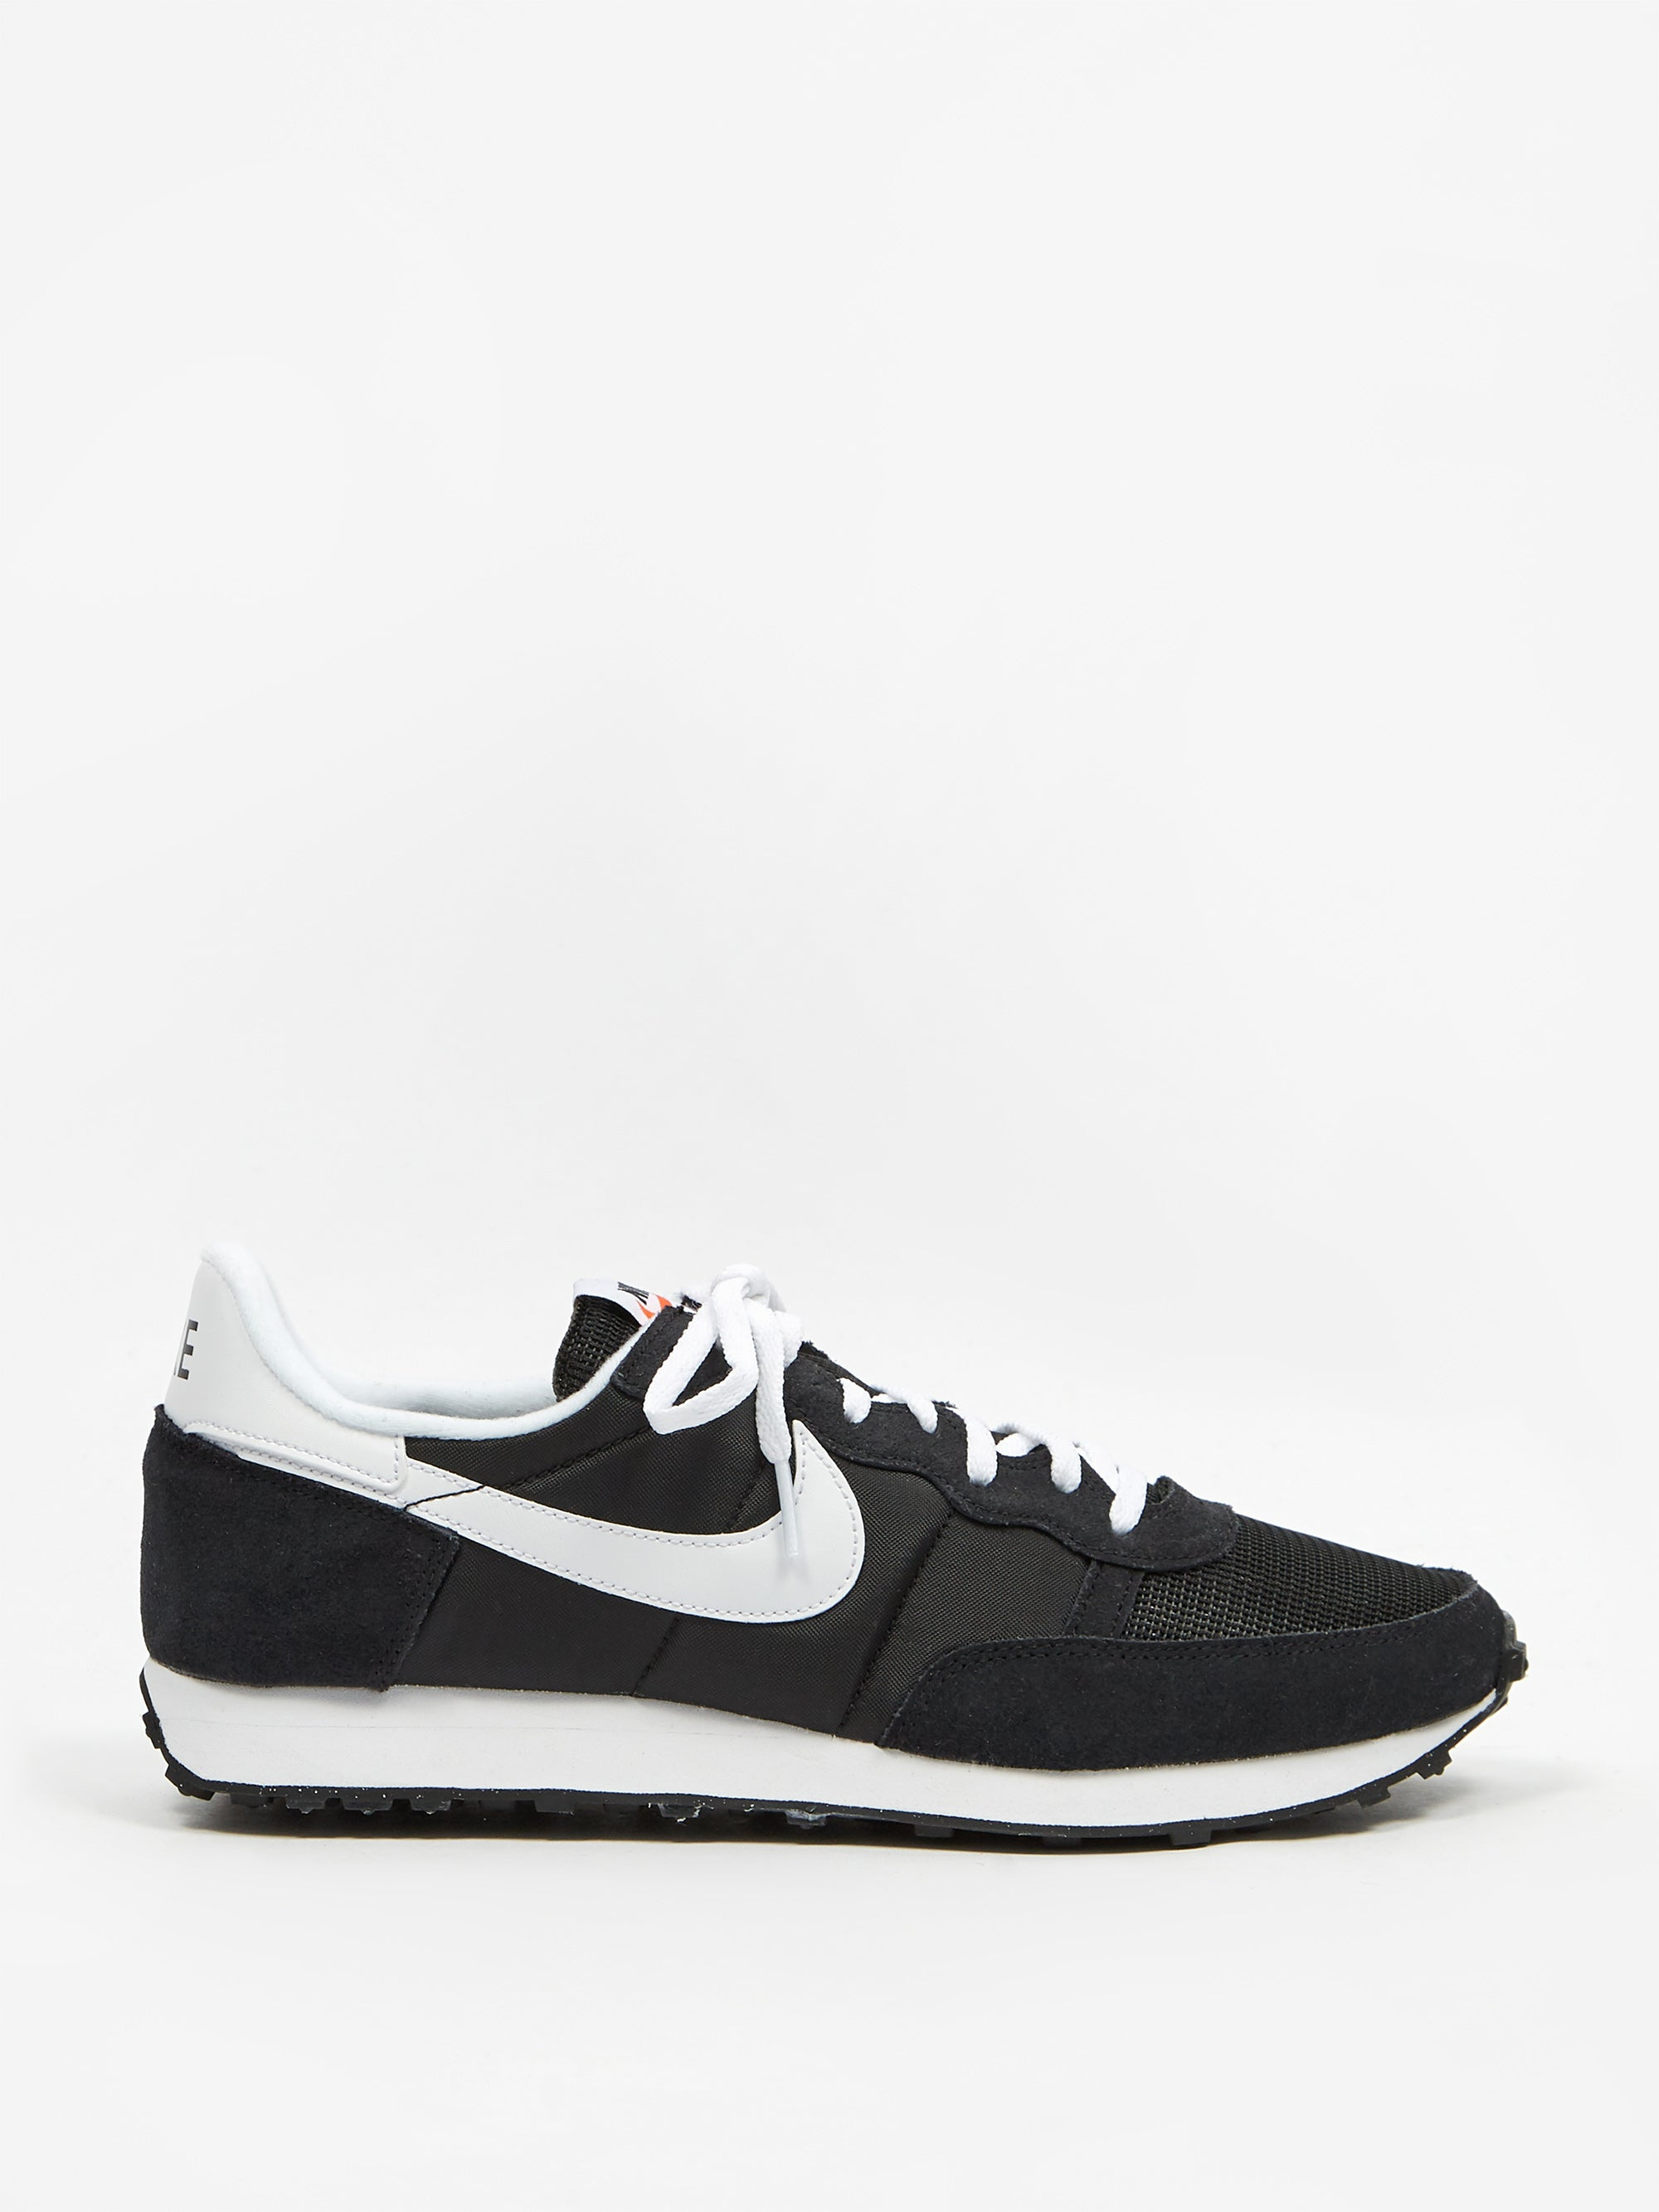 Regan estafa Árbol  Nike Challenger OG - Black/White | Goodhood